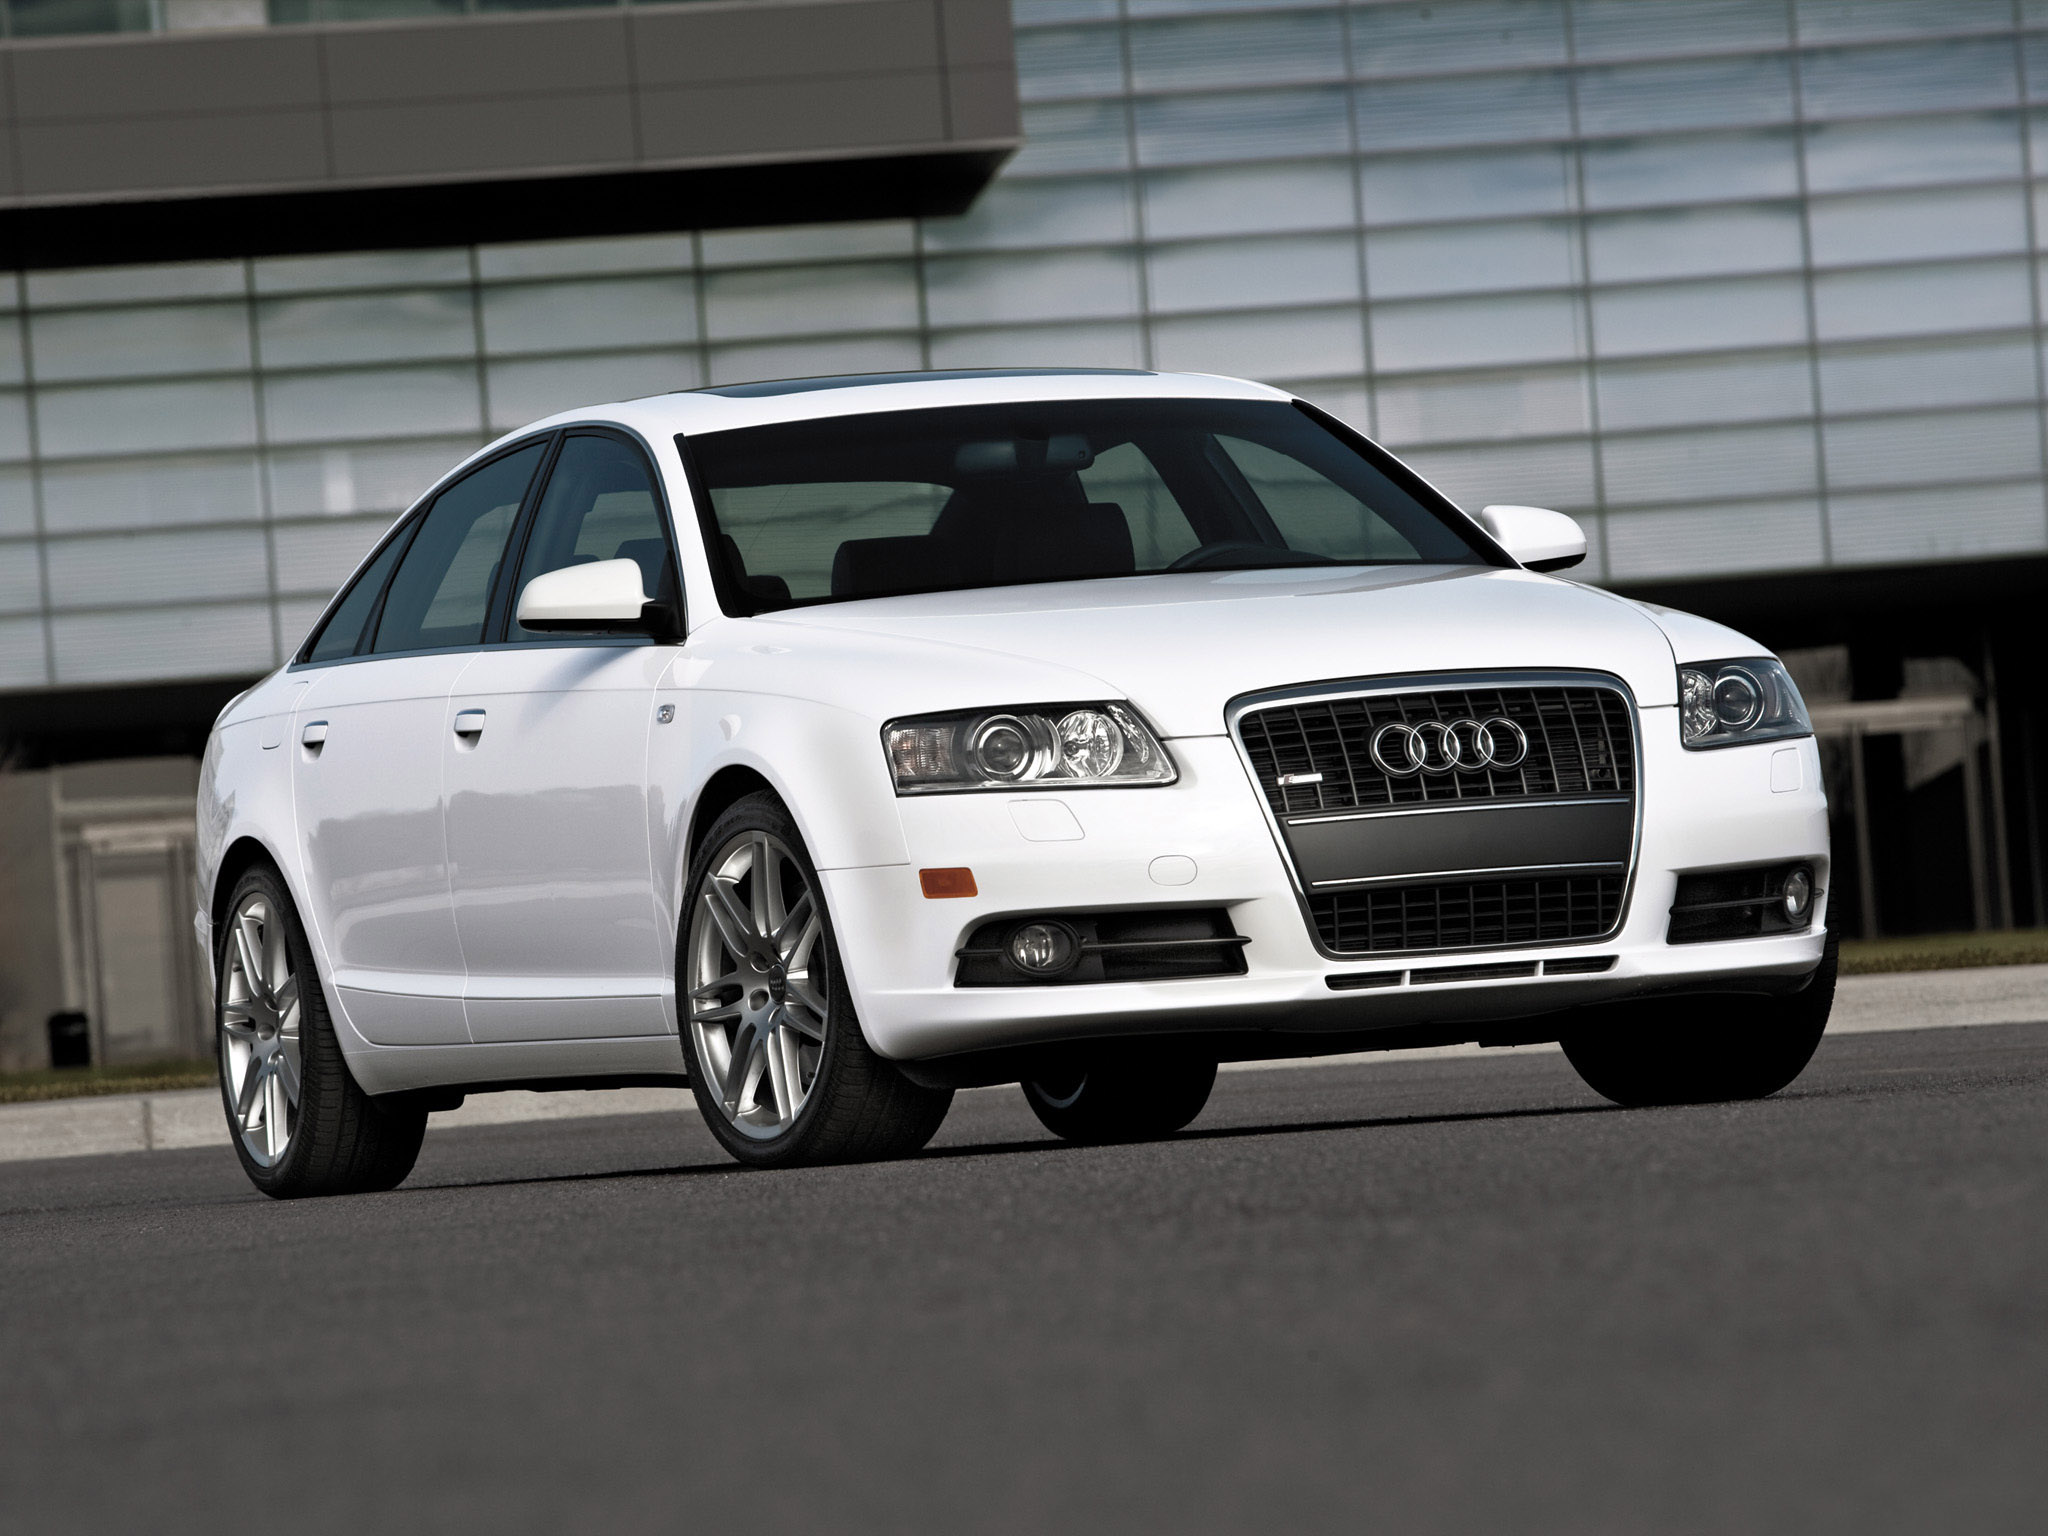 audi a6 4 2 quattro s line sedan usa 2007 audi a6 4 2 quattro s line sedan usa 2007 photo 04. Black Bedroom Furniture Sets. Home Design Ideas